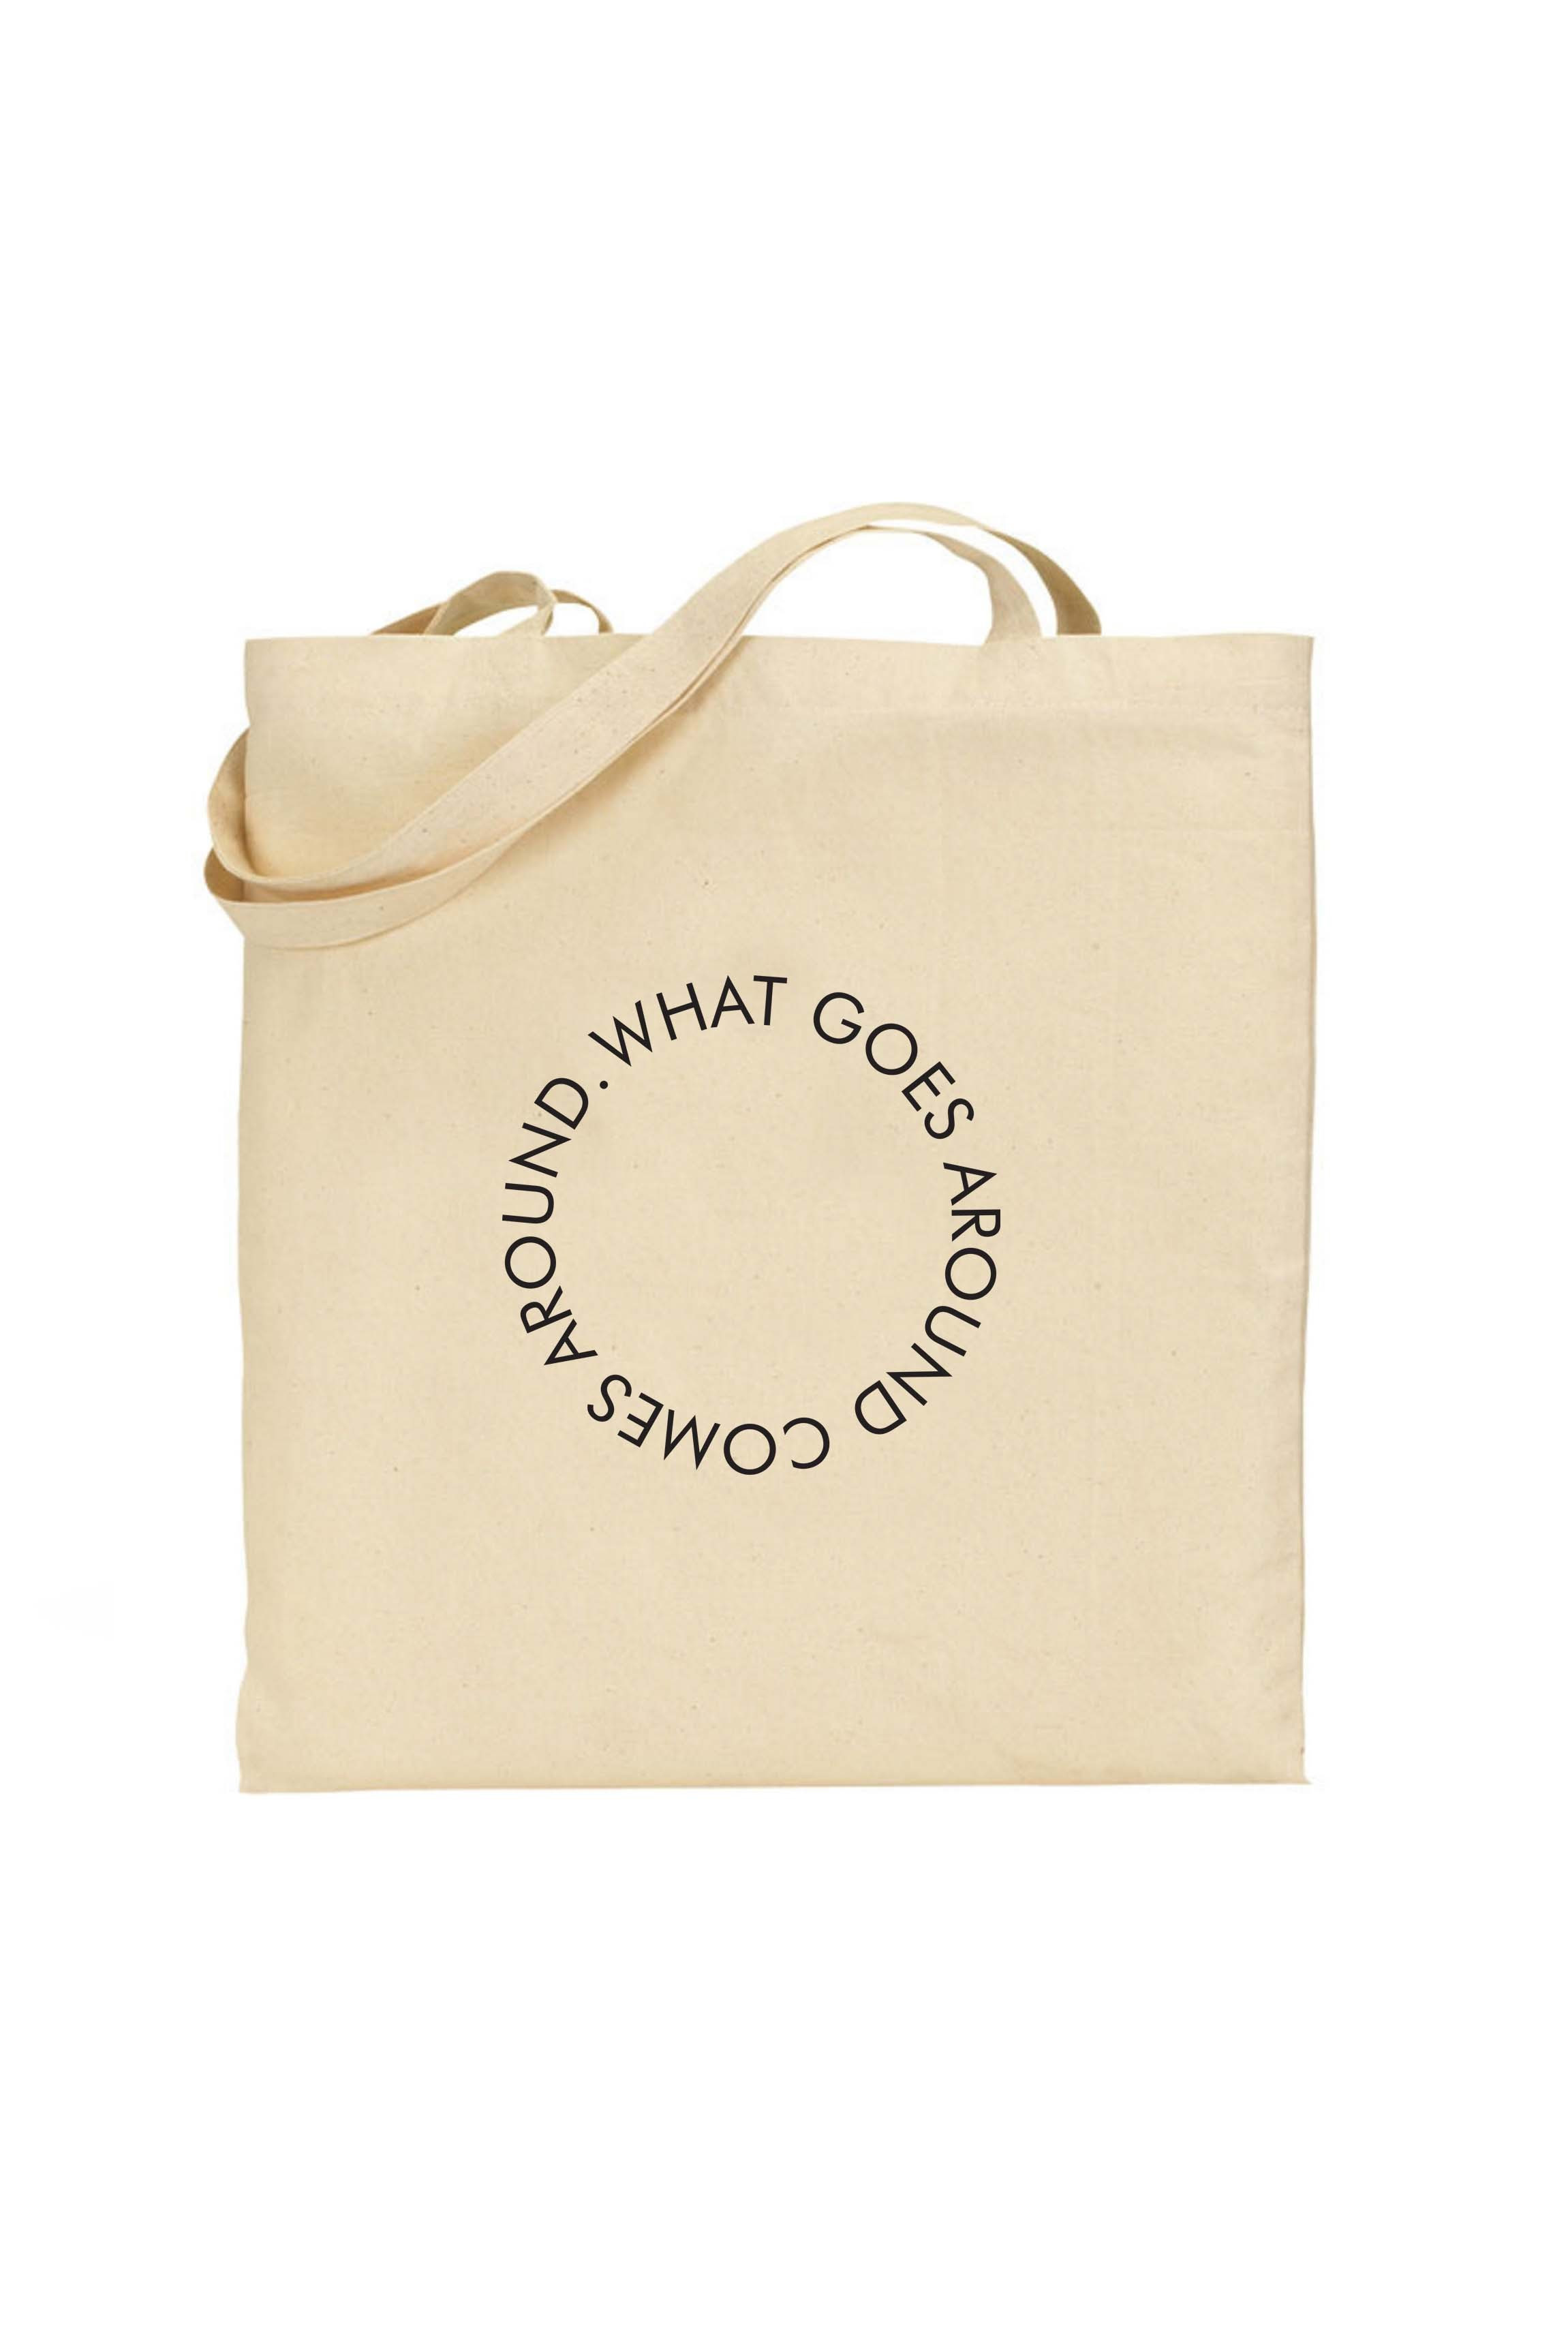 Tote Bag What Goes Around Comes Around Quotes Popular Themes